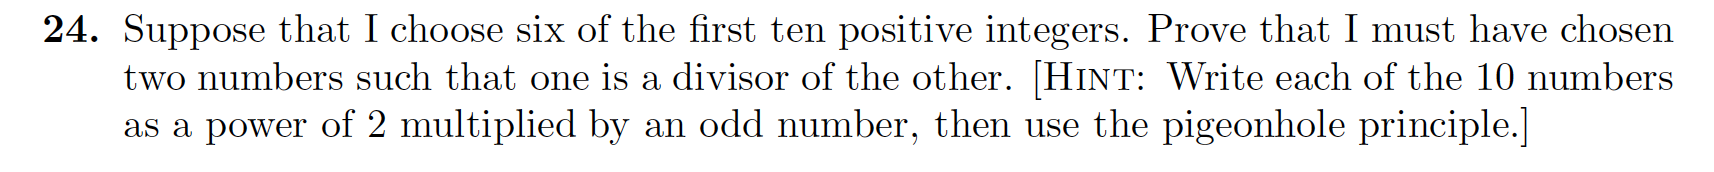 24. Suppose that I choose six of the first ten positive integers. Prove that I must have chosen two numbers such that one is a divisor of the other. [HINT: Write each of the 10 numbers as a power of 2 multiplied by an odd number, then use the pigeonhole principle.]